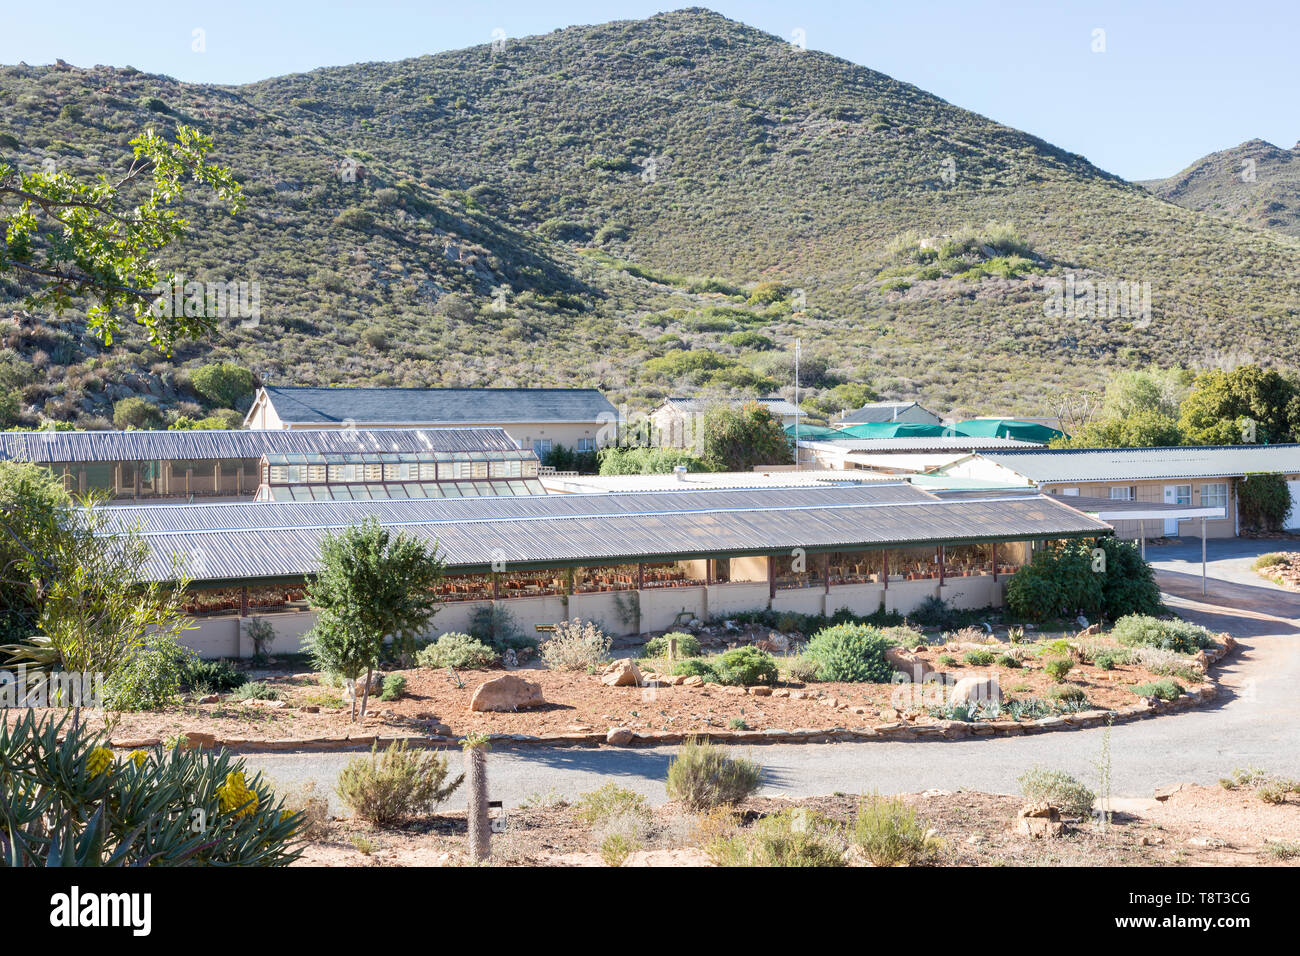 Herbarium at Karoo Desert National Botanical Garden, Worcester, Western Cape housing the Index Collection with over 3900 taxa of Southern African plan - Stock Image